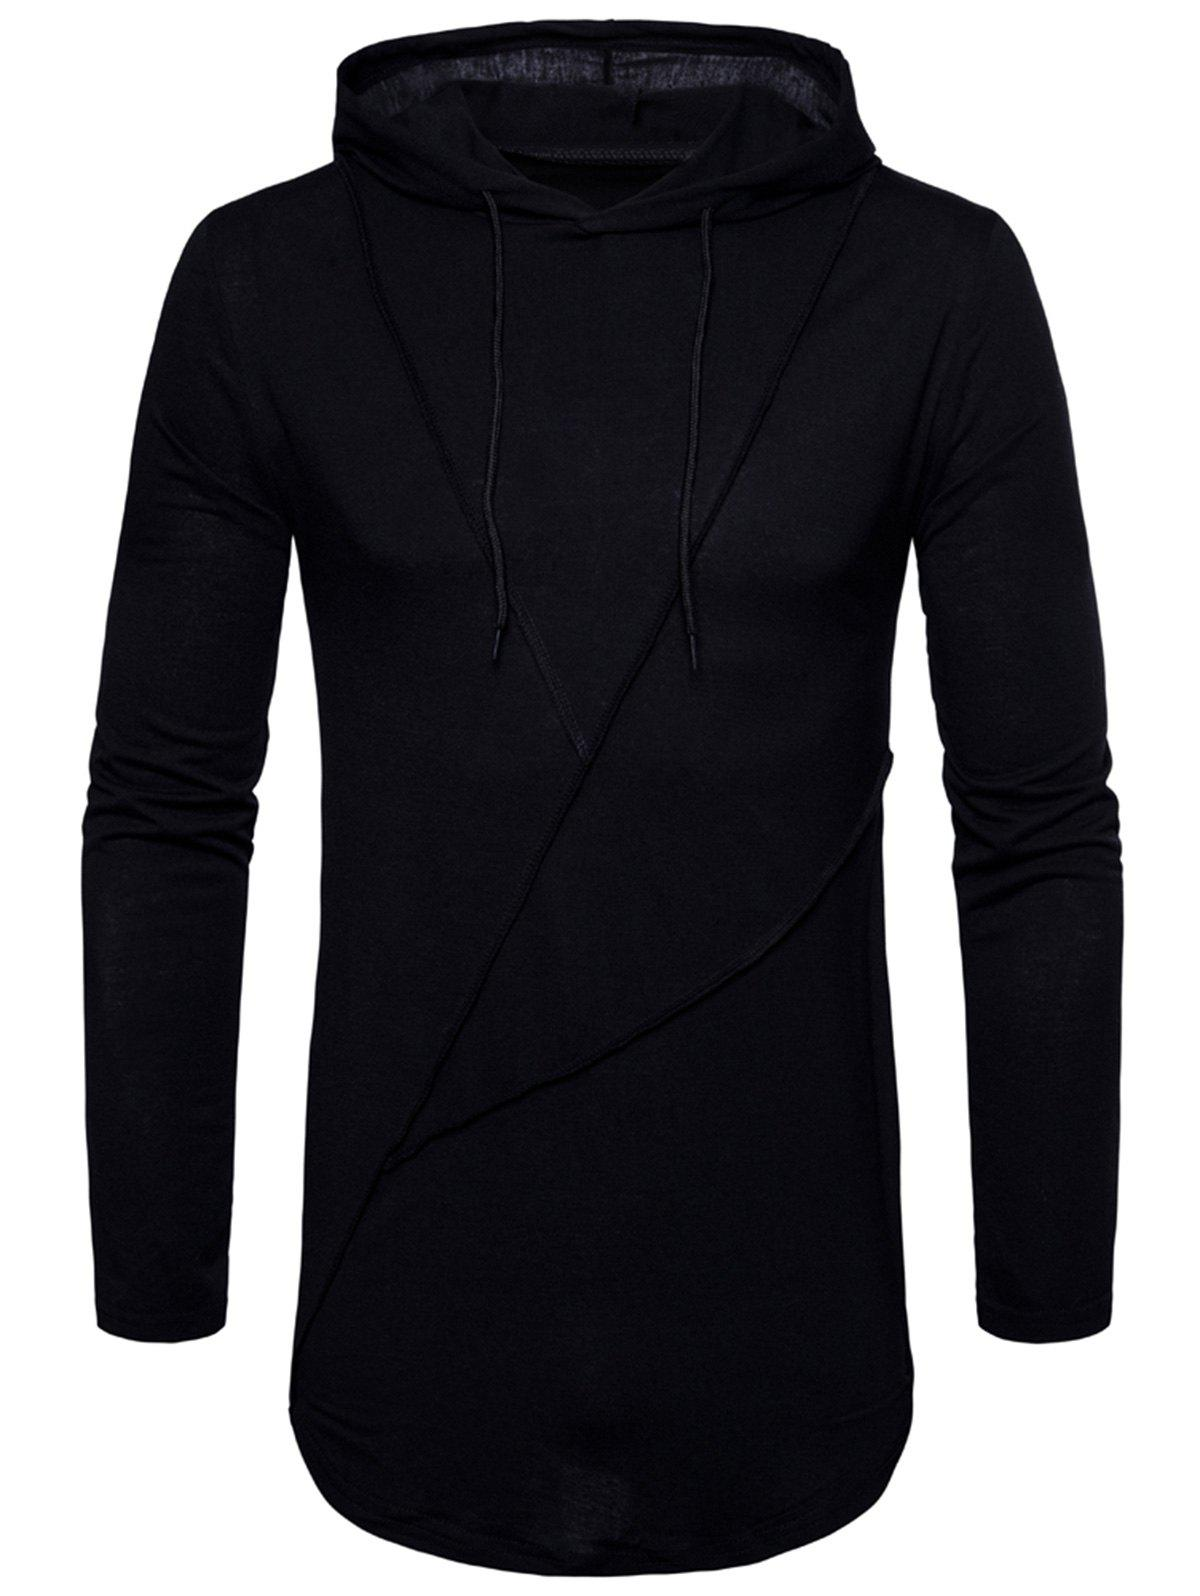 Unique Long Sleeve Solid Color Zip Hem Hooded T-shirt